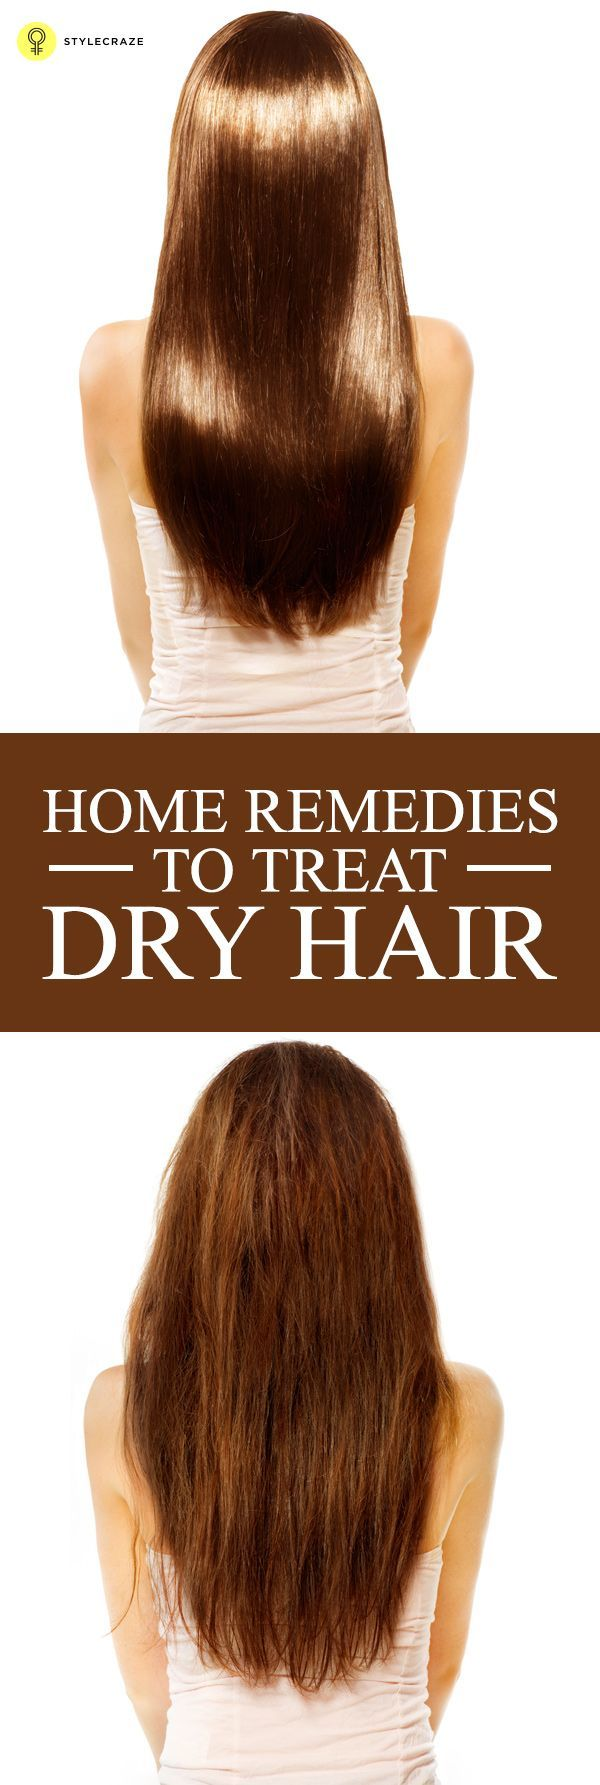 24 Dry Hair Treatments From Your Kitchen pics